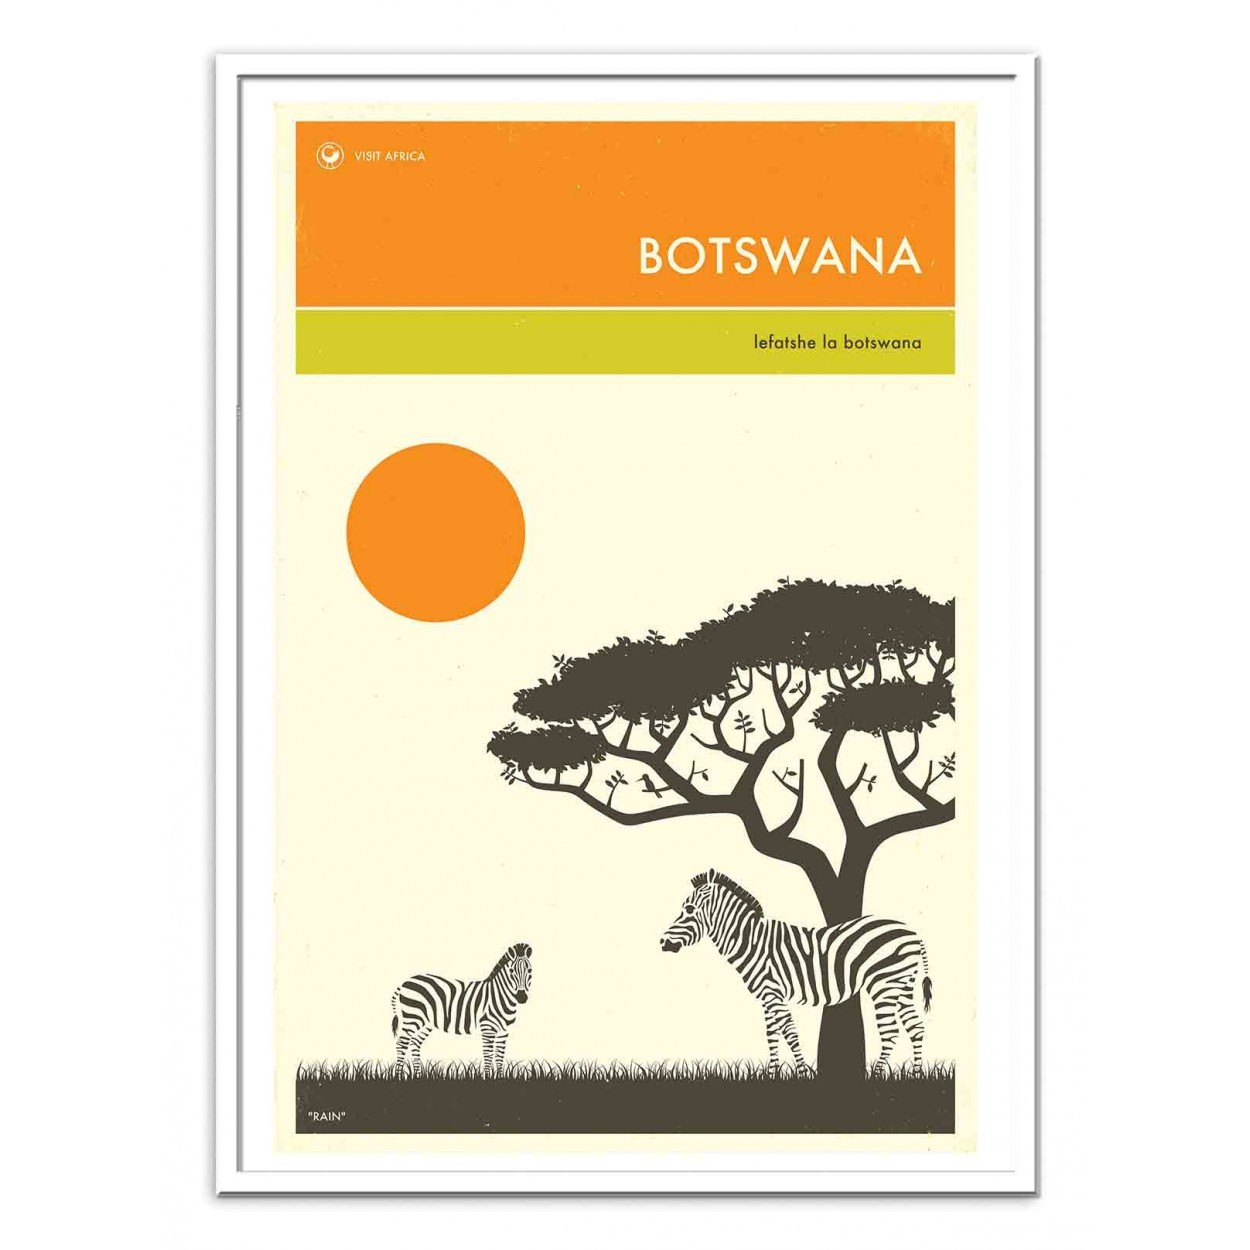 affiche d 39 art tableau et poster design du botswana en afrique. Black Bedroom Furniture Sets. Home Design Ideas